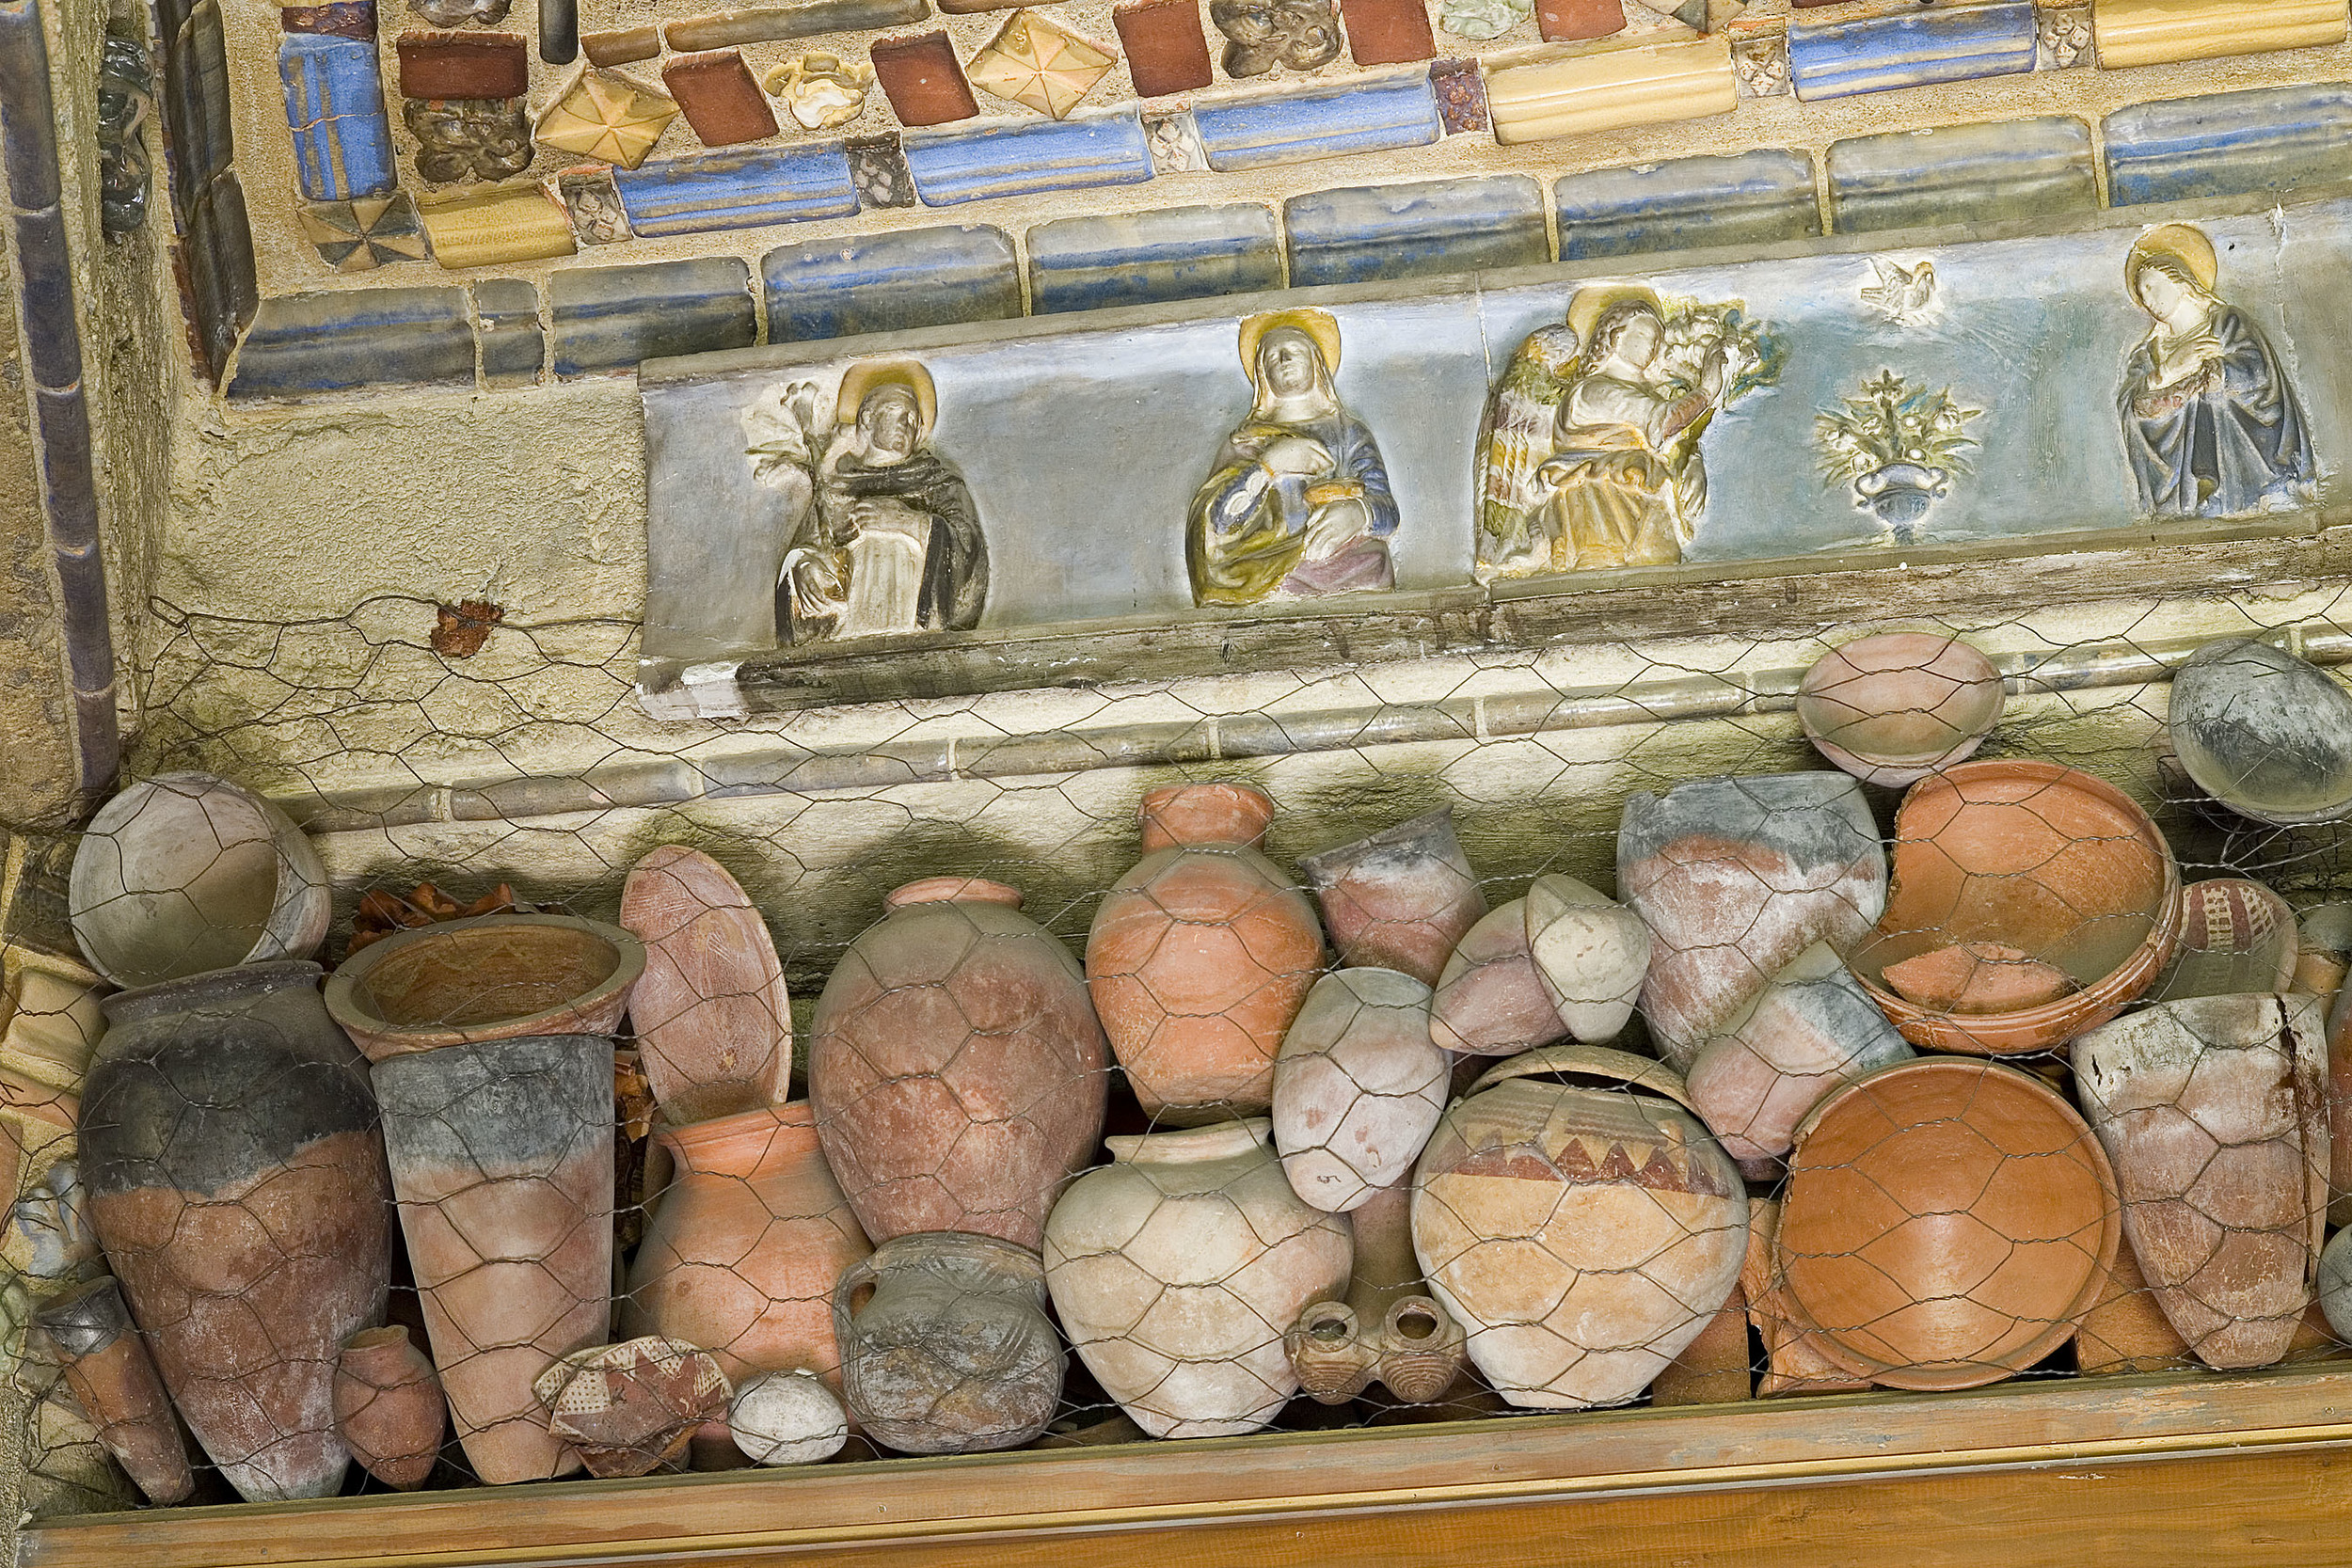 Figure 2: Ancient pottery from Mercer's collection displayed in his study at Fonthill. Photograph by Jack Carnell.